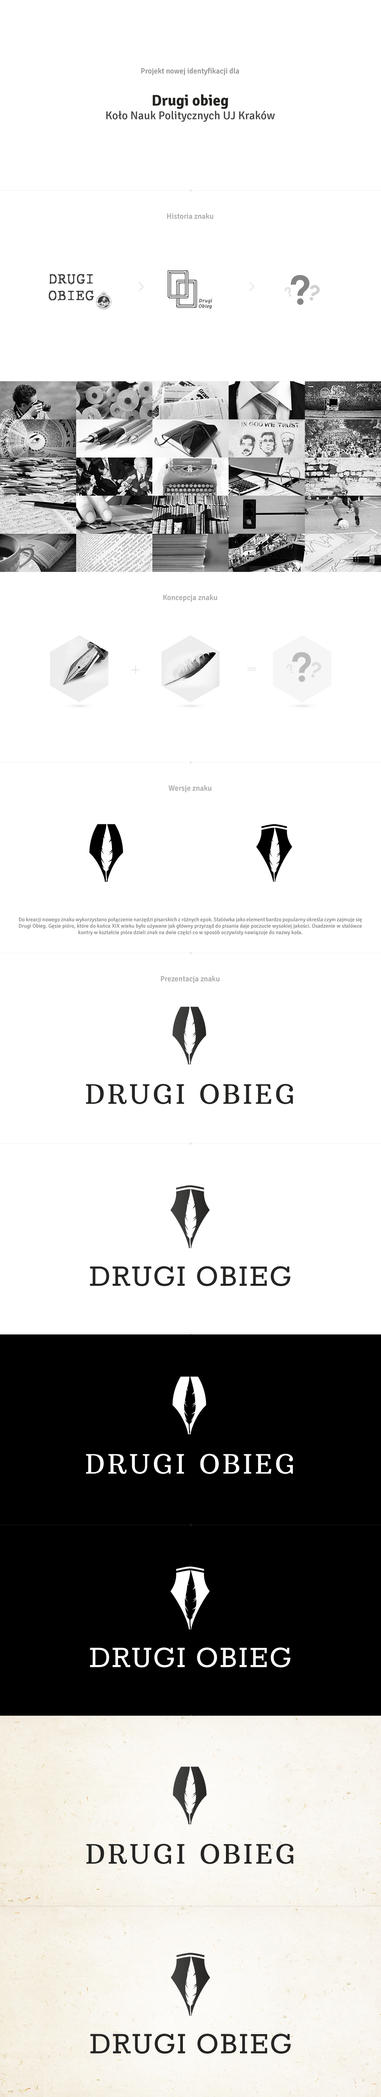 DRUGI OBIEG by sonars